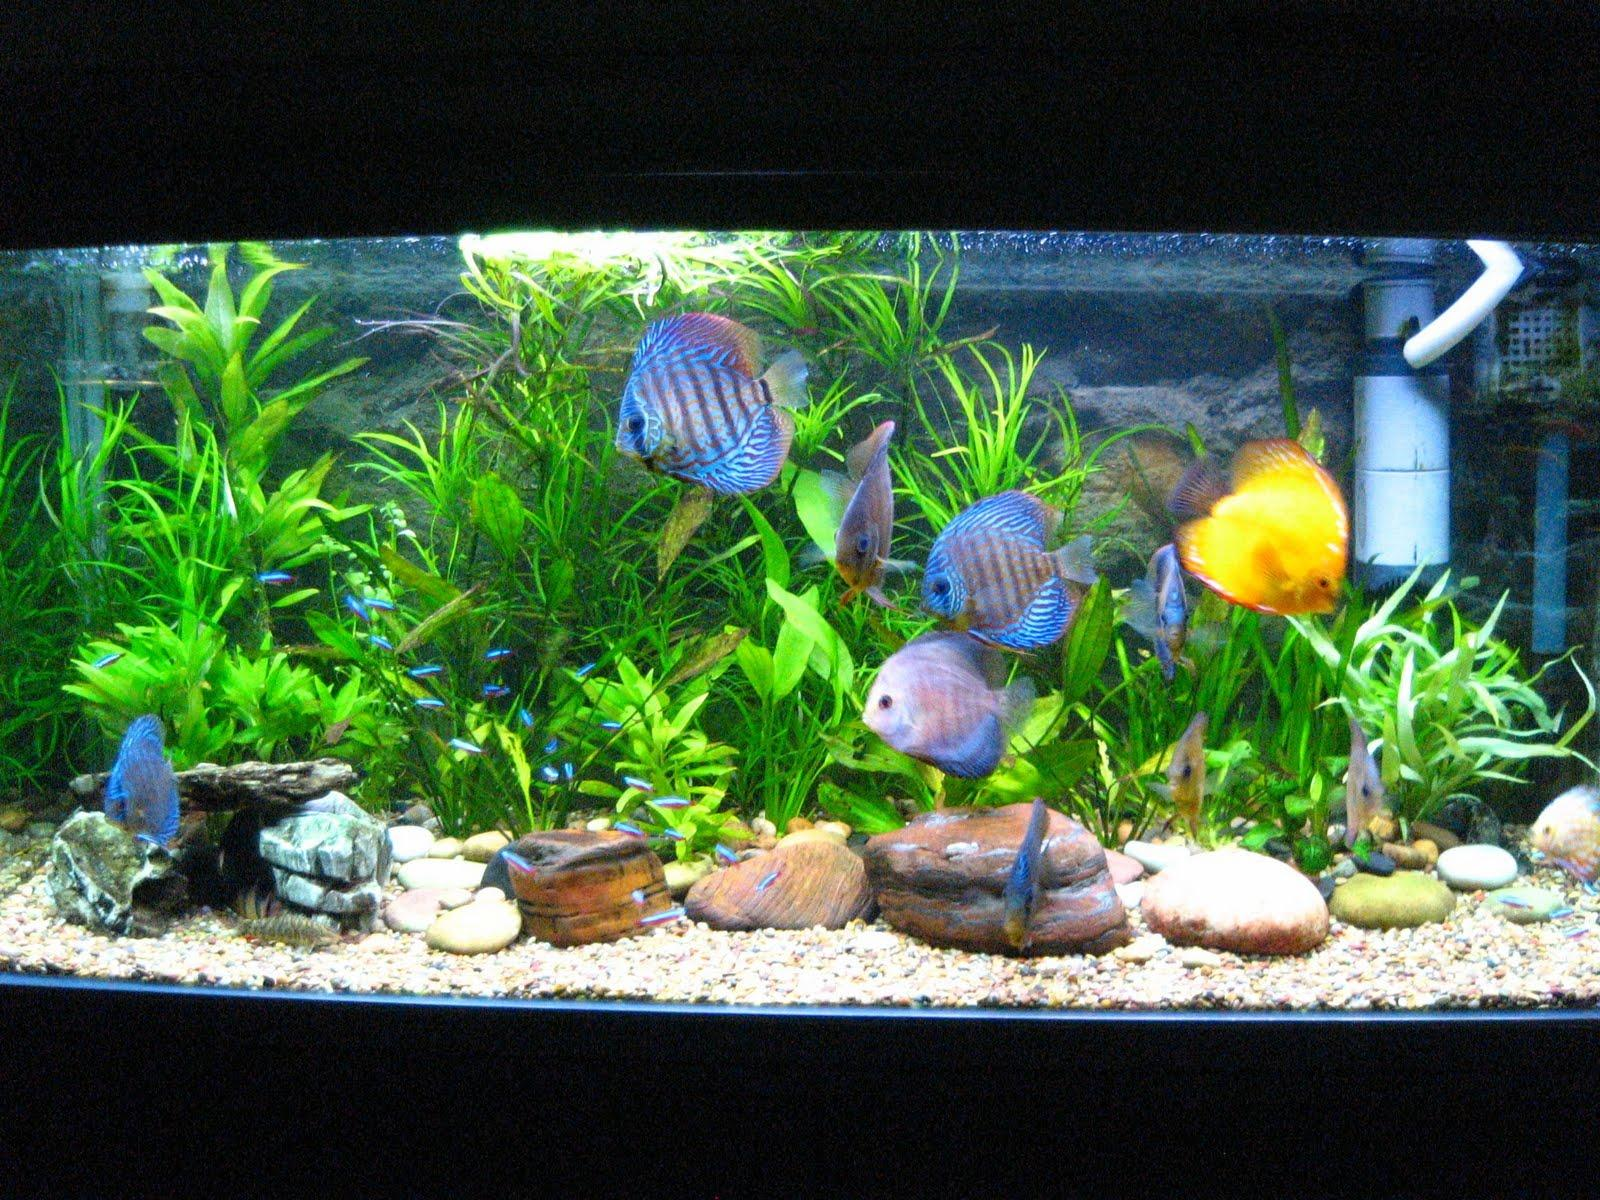 Freshwater Fish Tank : Fish Diseases Your Fish Might Get,freshwater aquariums,aquariums ...